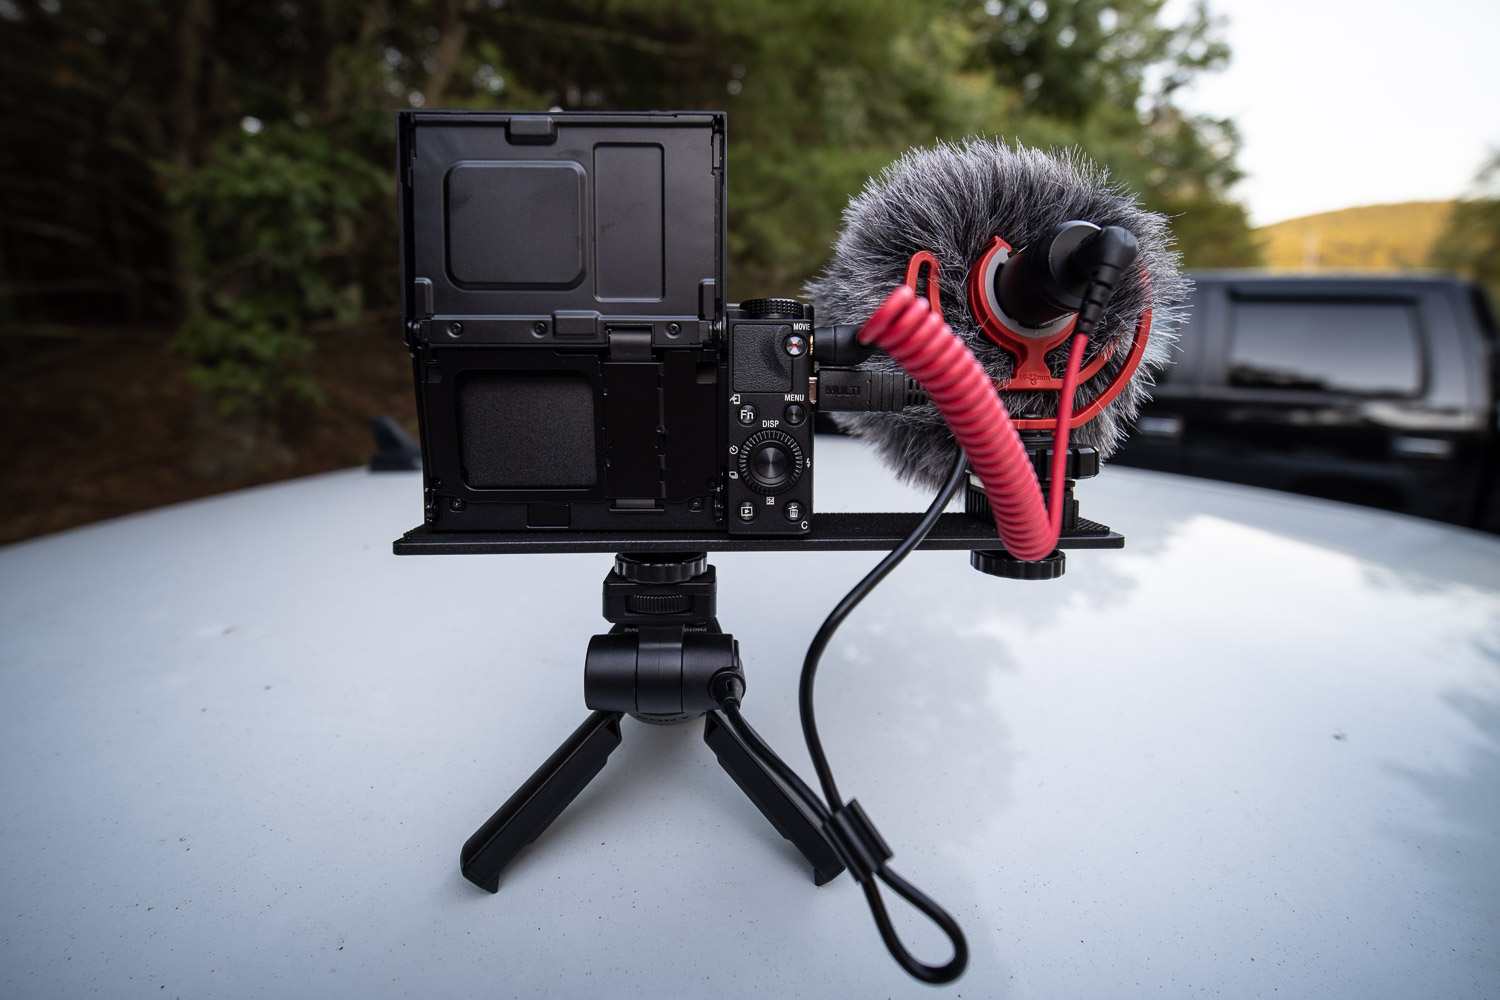 Sony RX100 VII Vlogging set-up